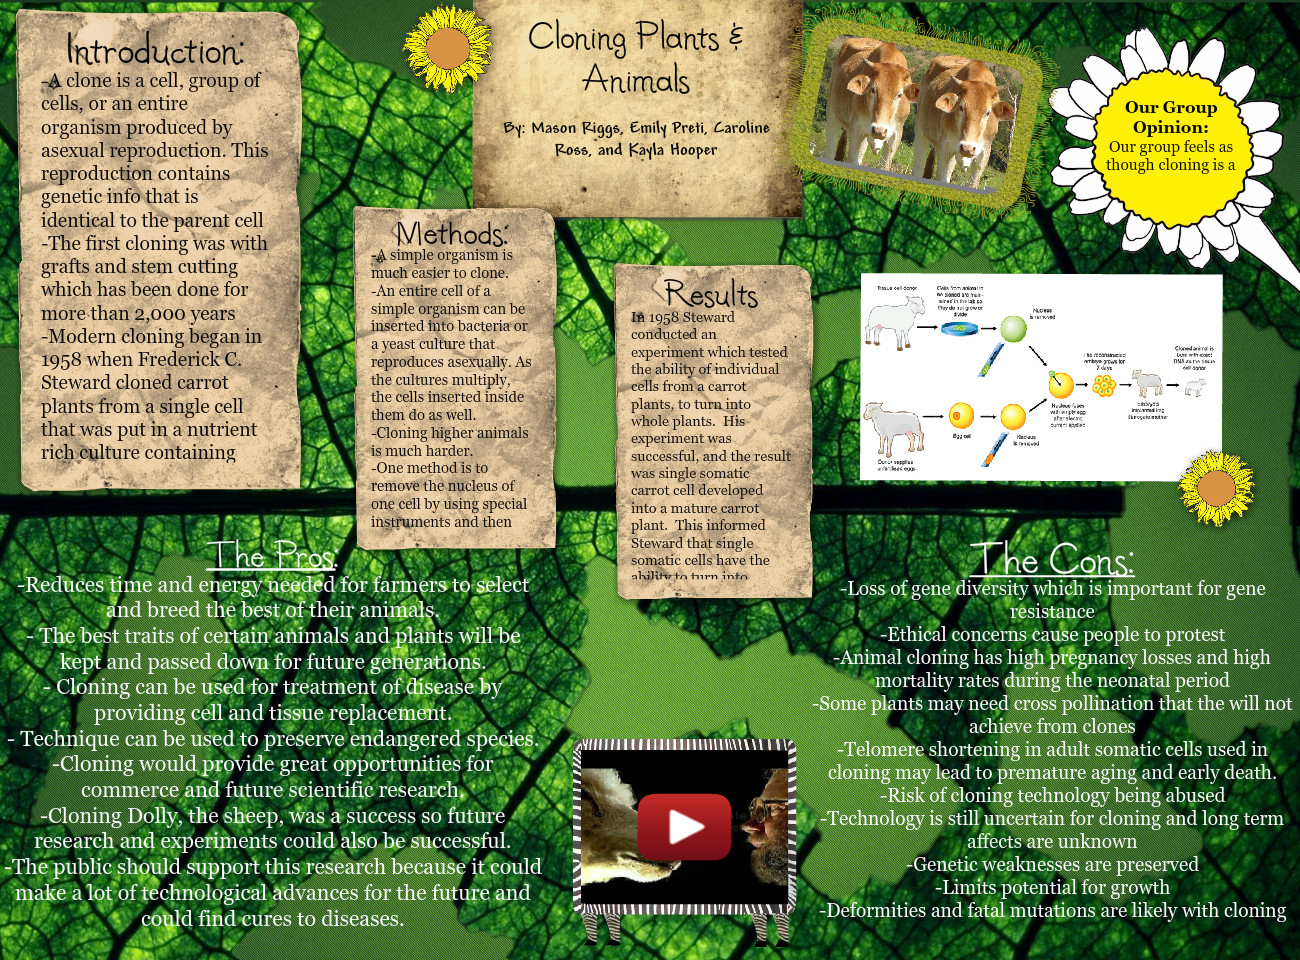 [2015] Caroline Ross 1B (AP Bio 1B): Cloning Plants And Animals